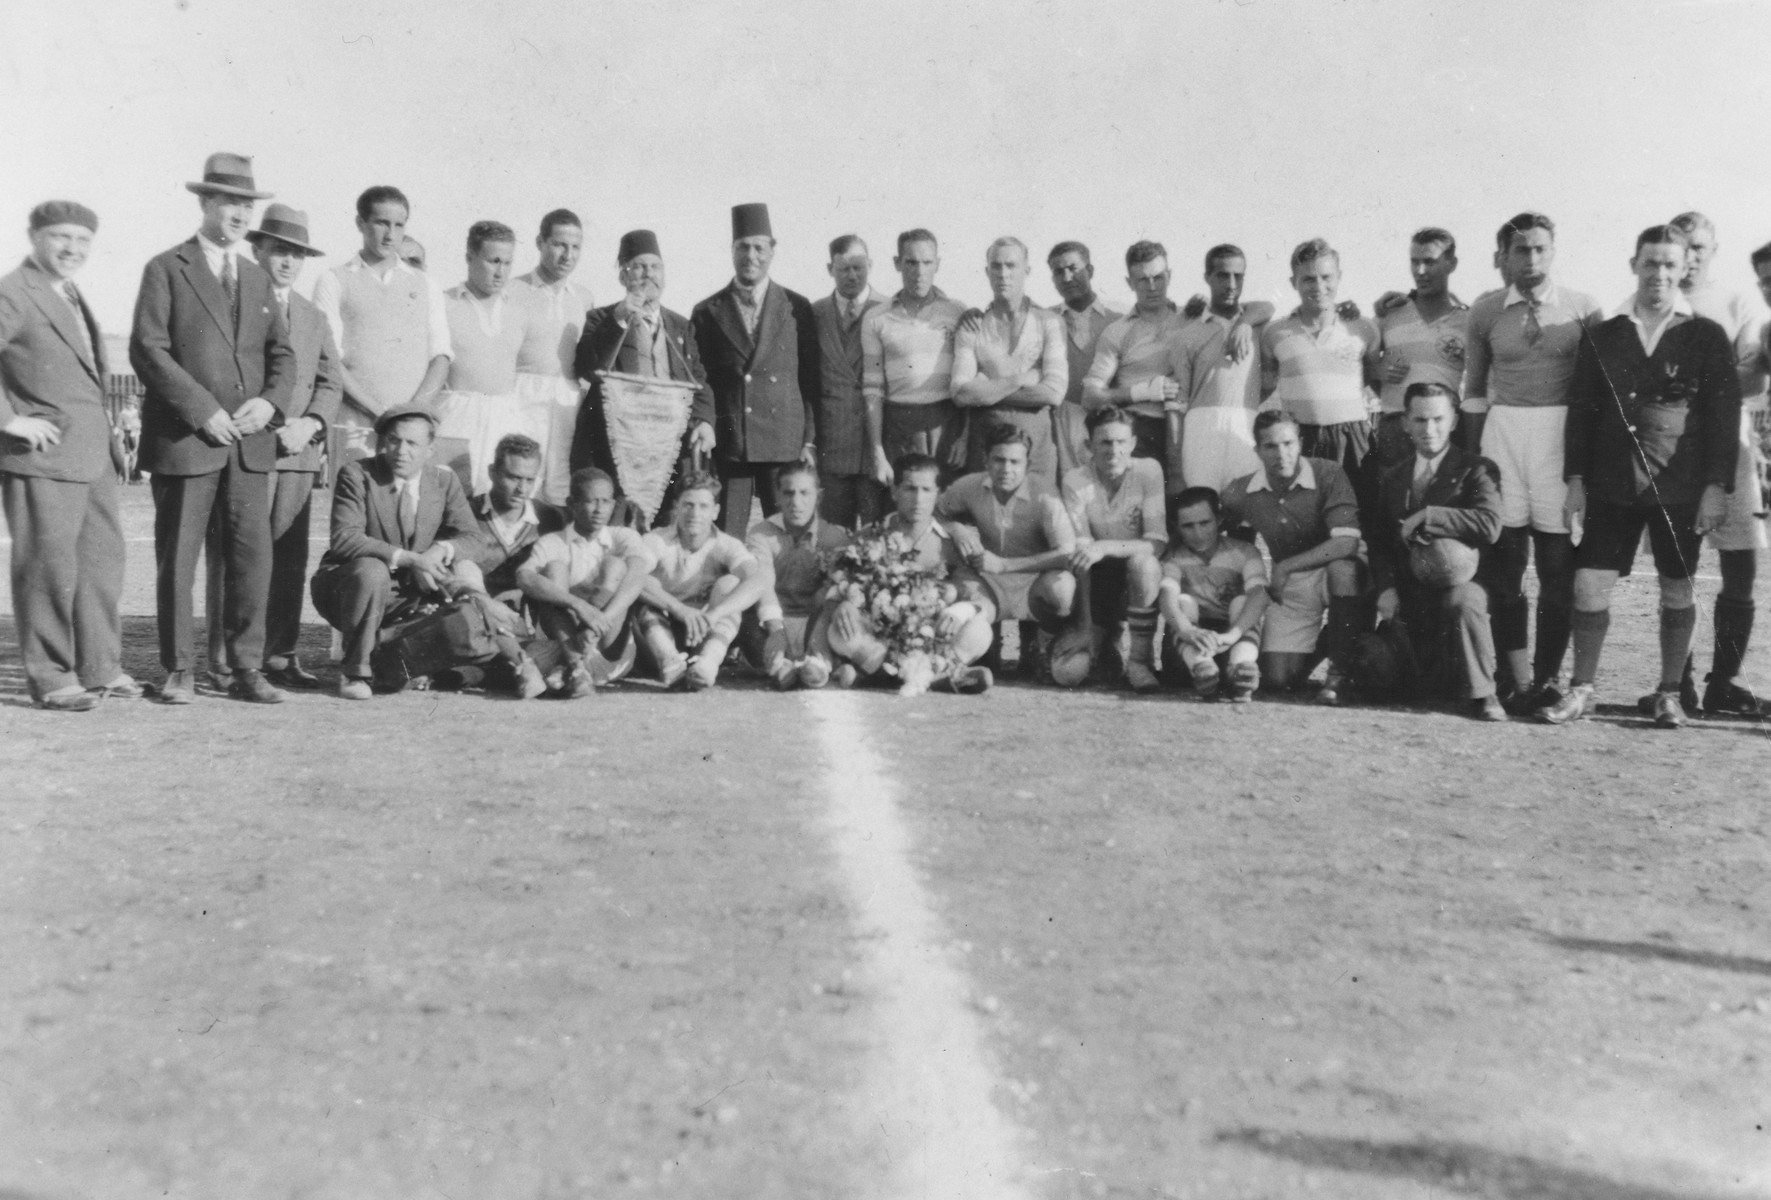 Group portrait of a Jewish soccer team in Macedonia.